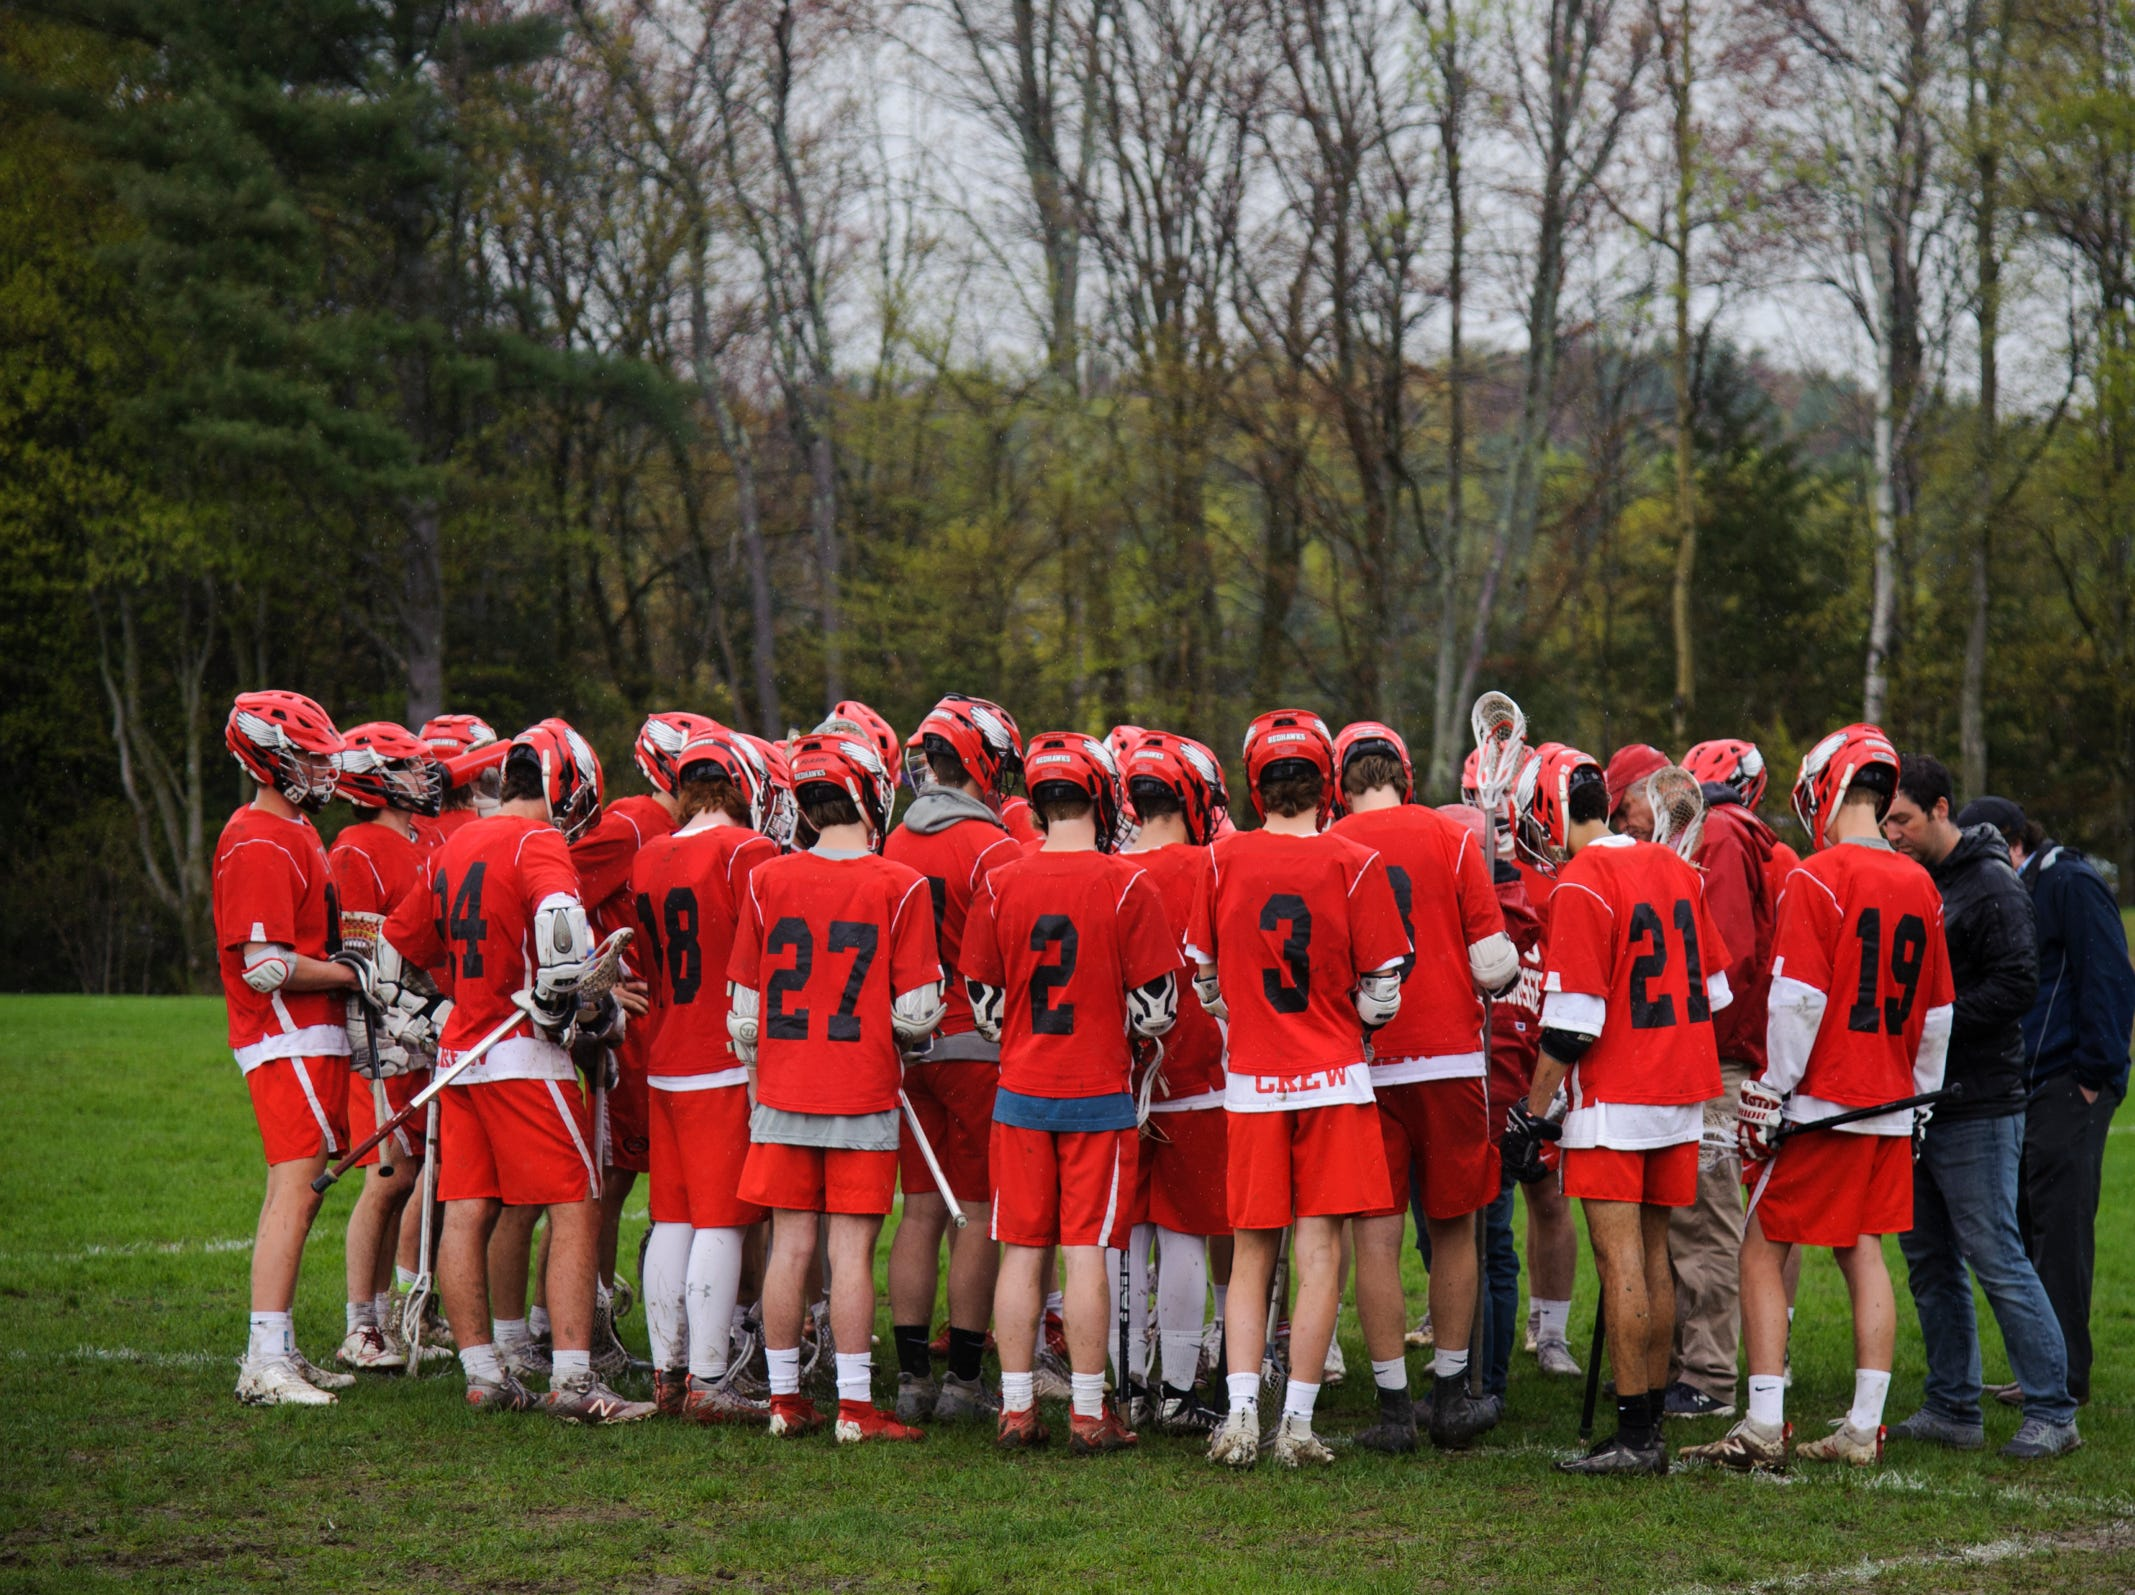 CVU huddles together during the boys lacrosse game between the Champlain Valley Union Redhawks and the Mount Mansfield Cougars at MMU High School on Tuesday afternoon May 14, 2019 in Jericho, Vermont.